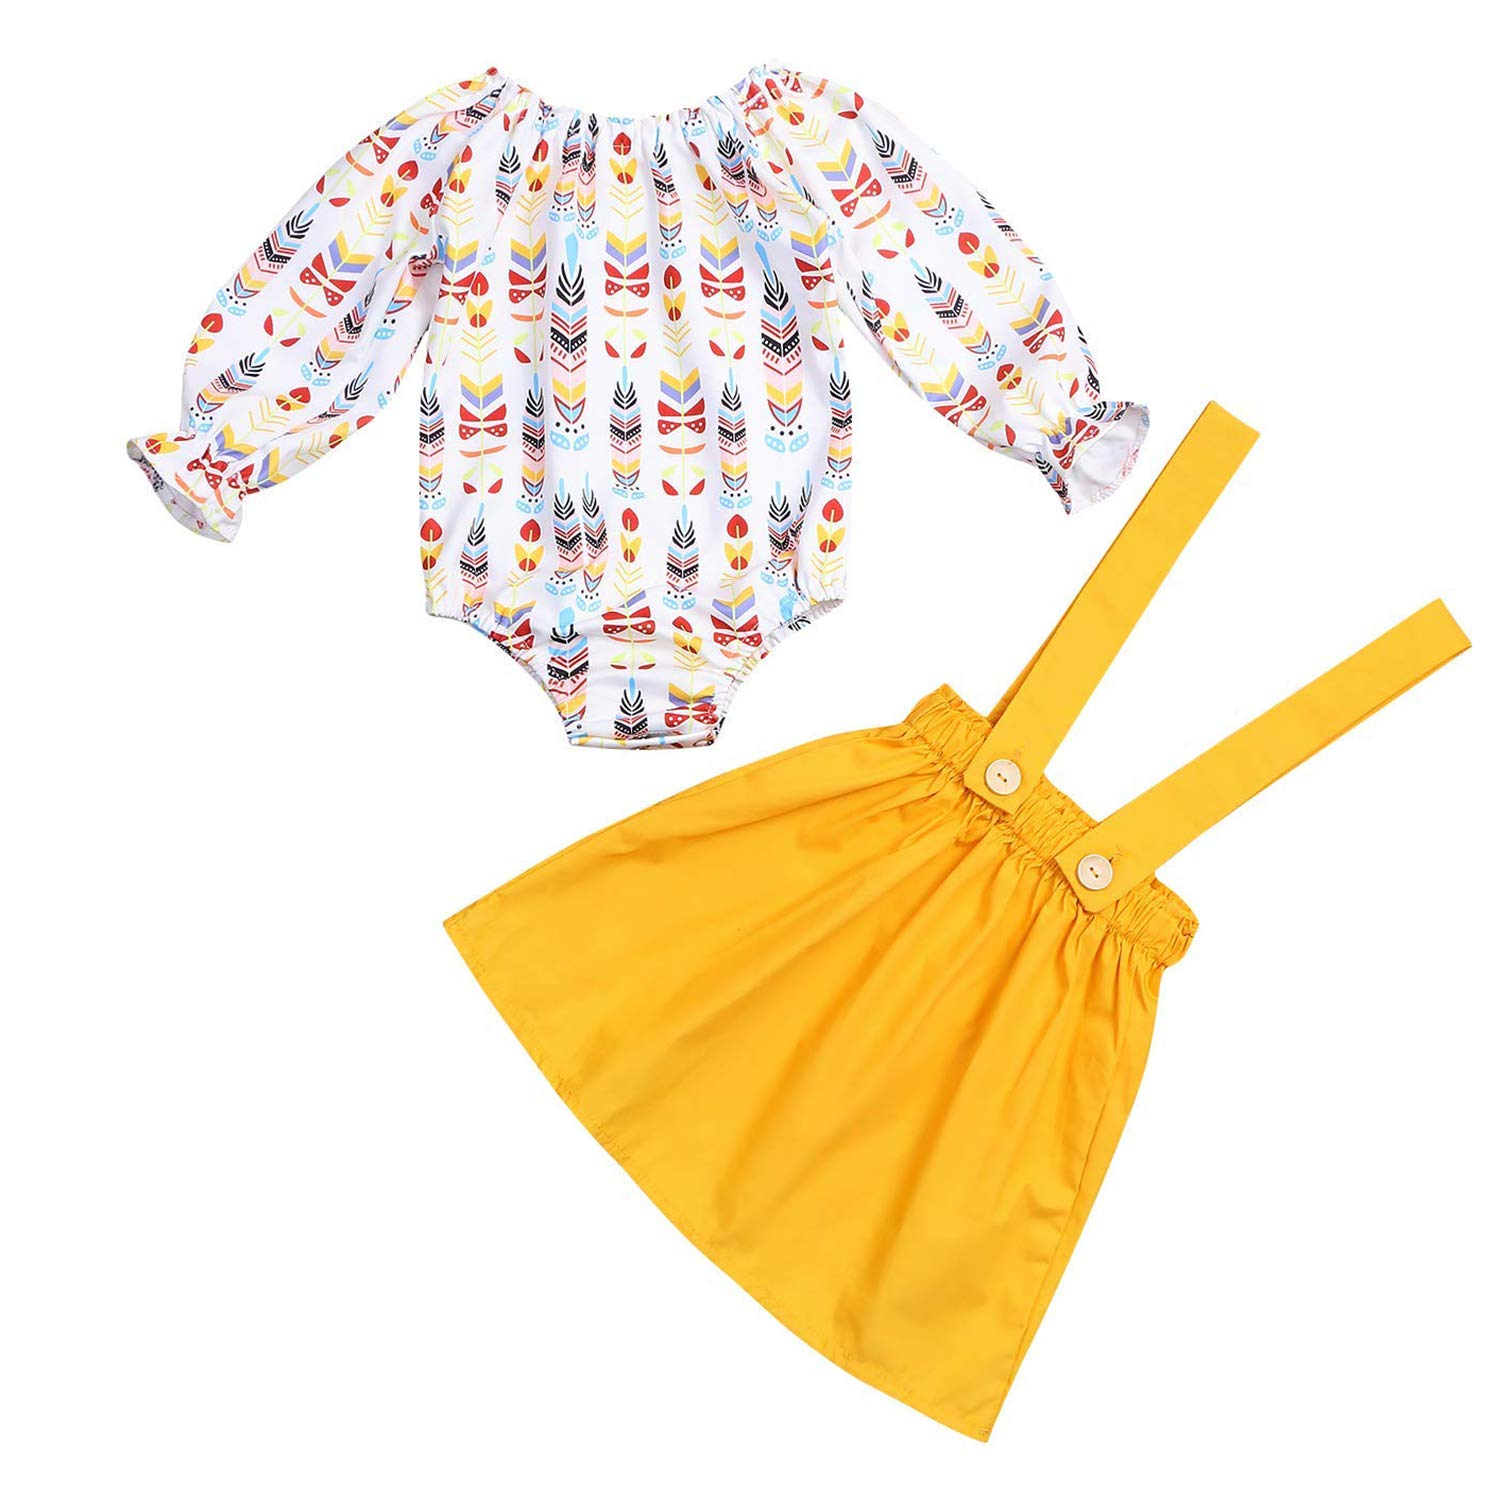 670da7435 3 Styles:floral yellow romper with sunflower headband / long sleeve romper  + yellow button suspender skirt. Occasion:Daily;photo outfit;party;birthday  party ...